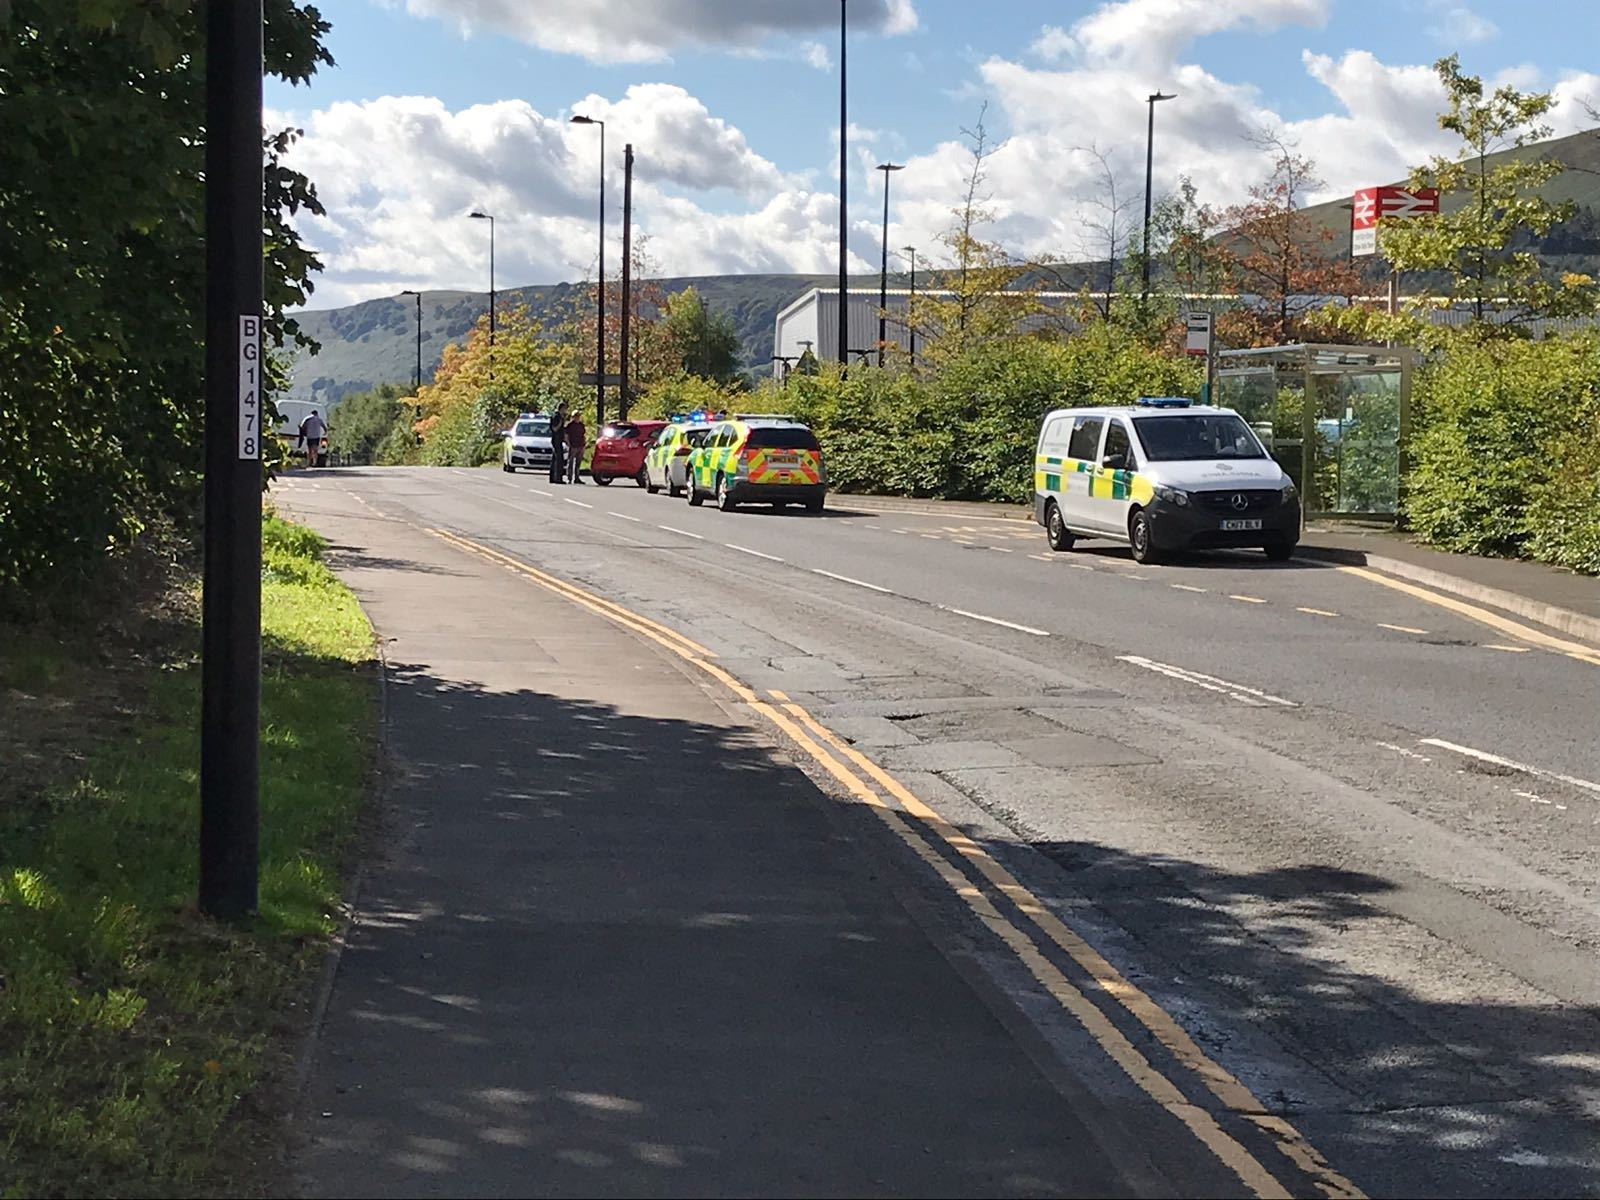 Emergency services are at the scene in Ebbw Vale